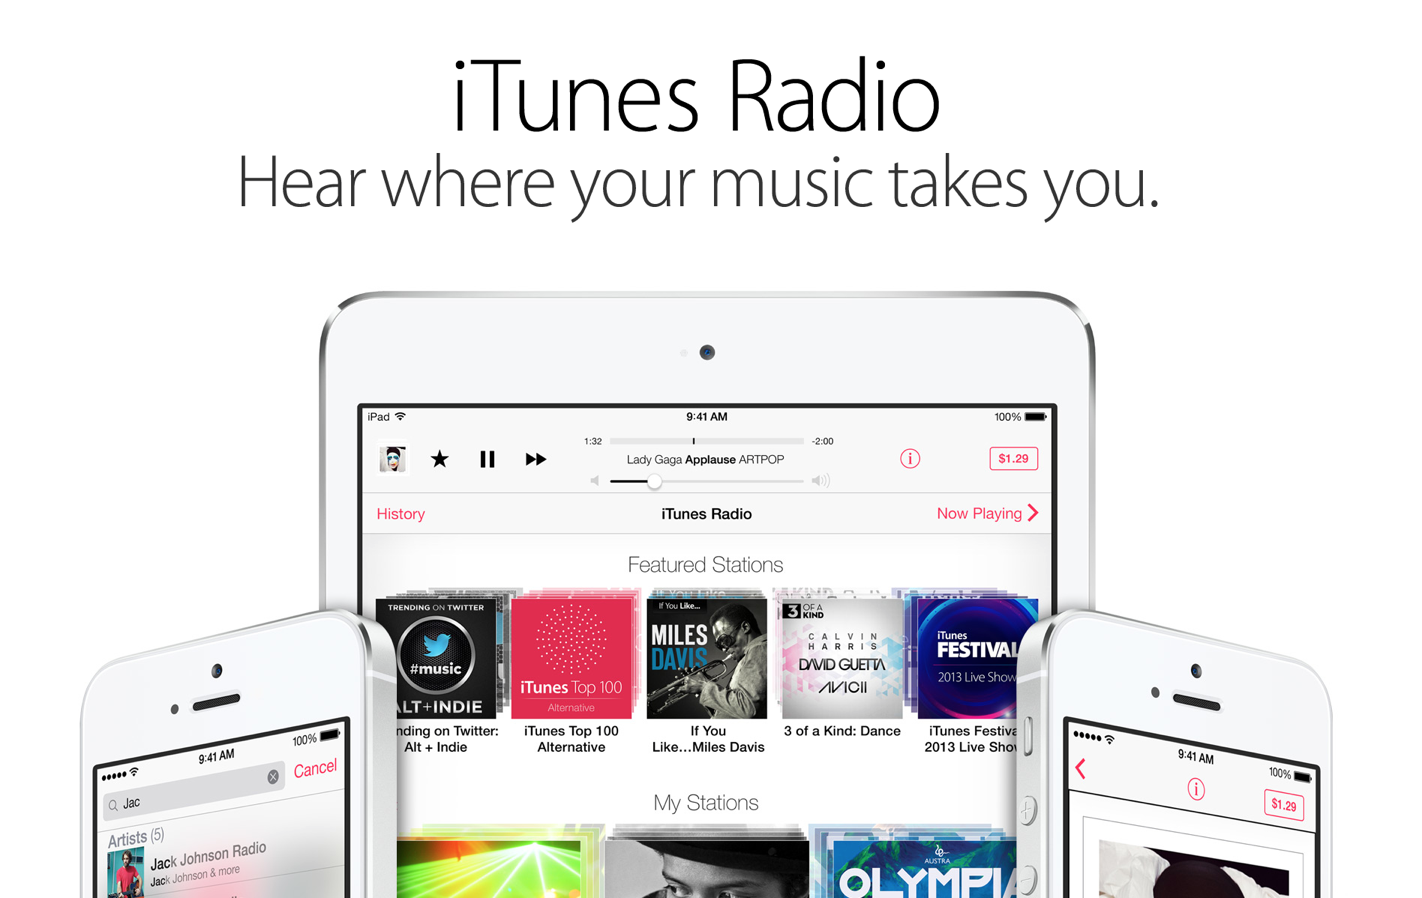 Surprise: iTunes Radio Doesn't Seem To Be A Pandora-Killer, After All